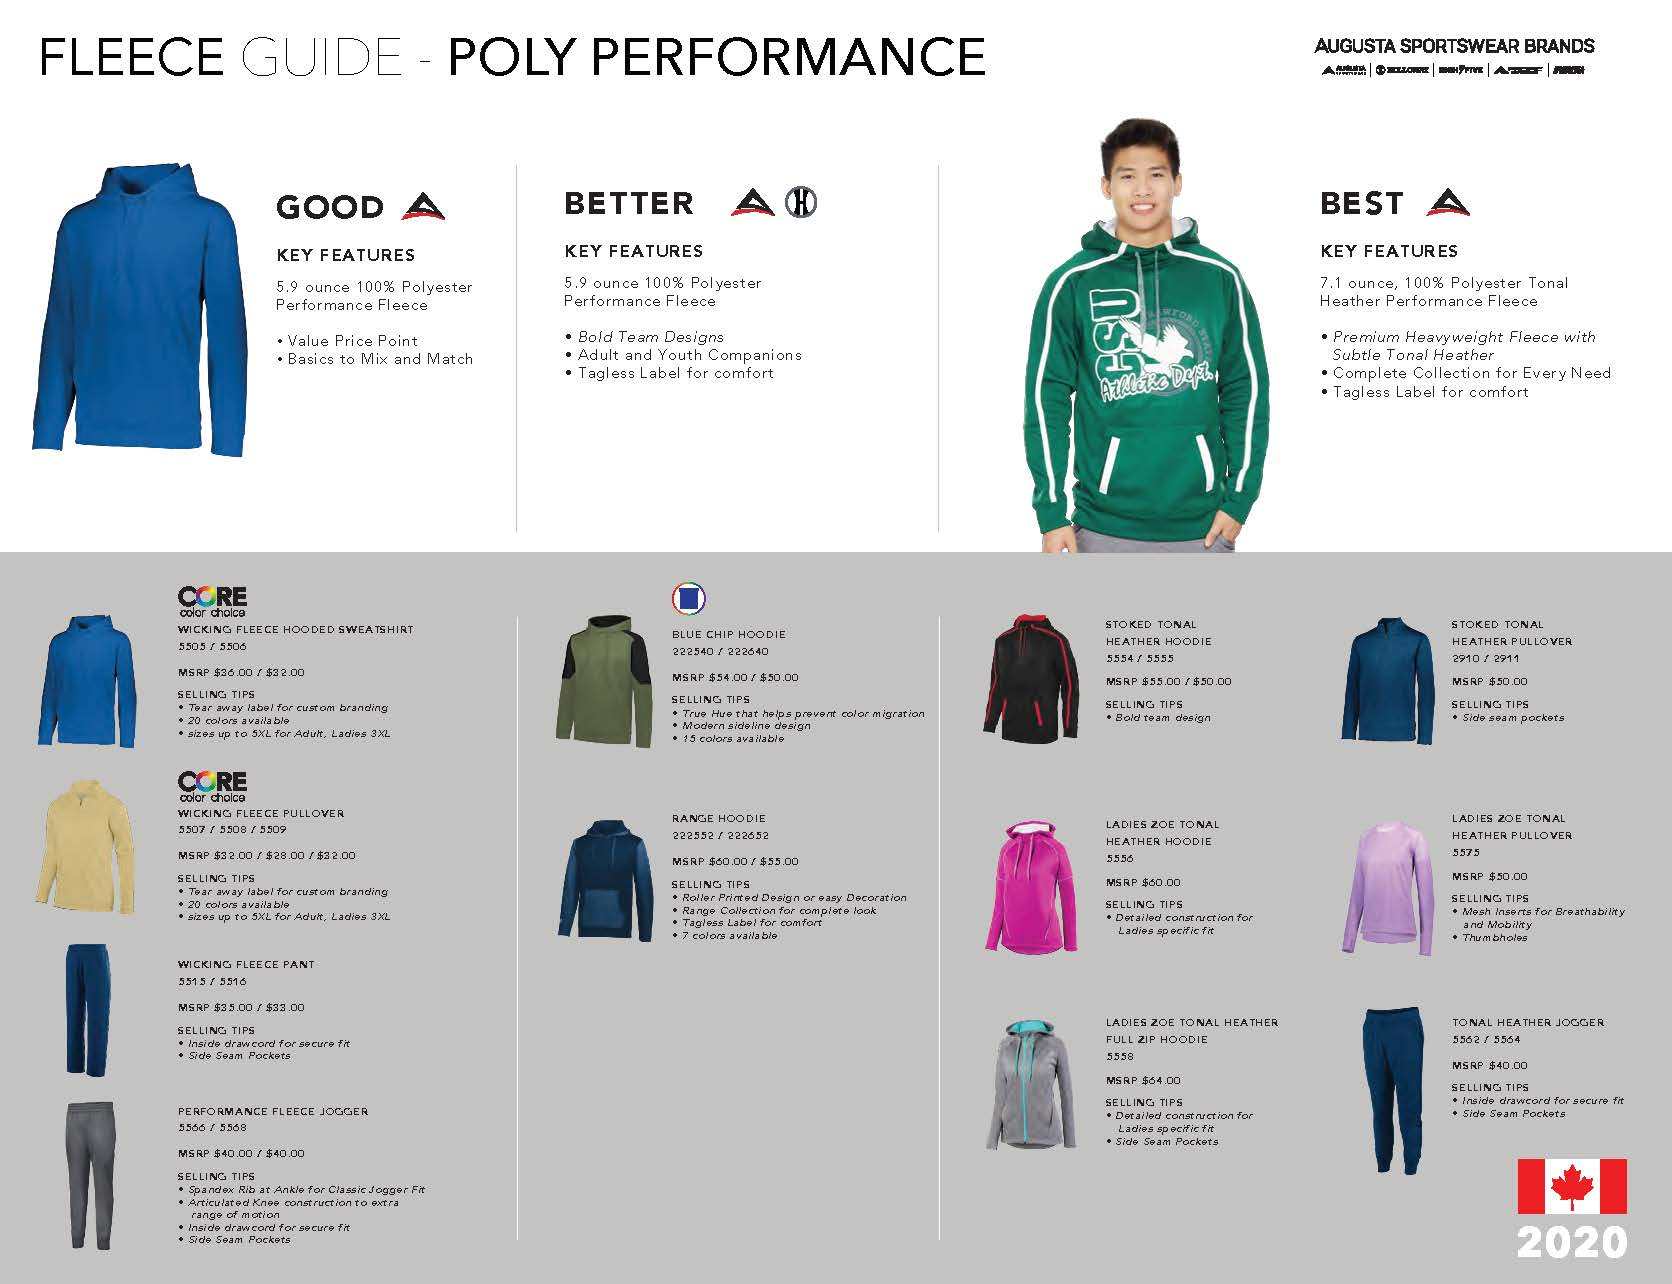 Performance Fleece Styles